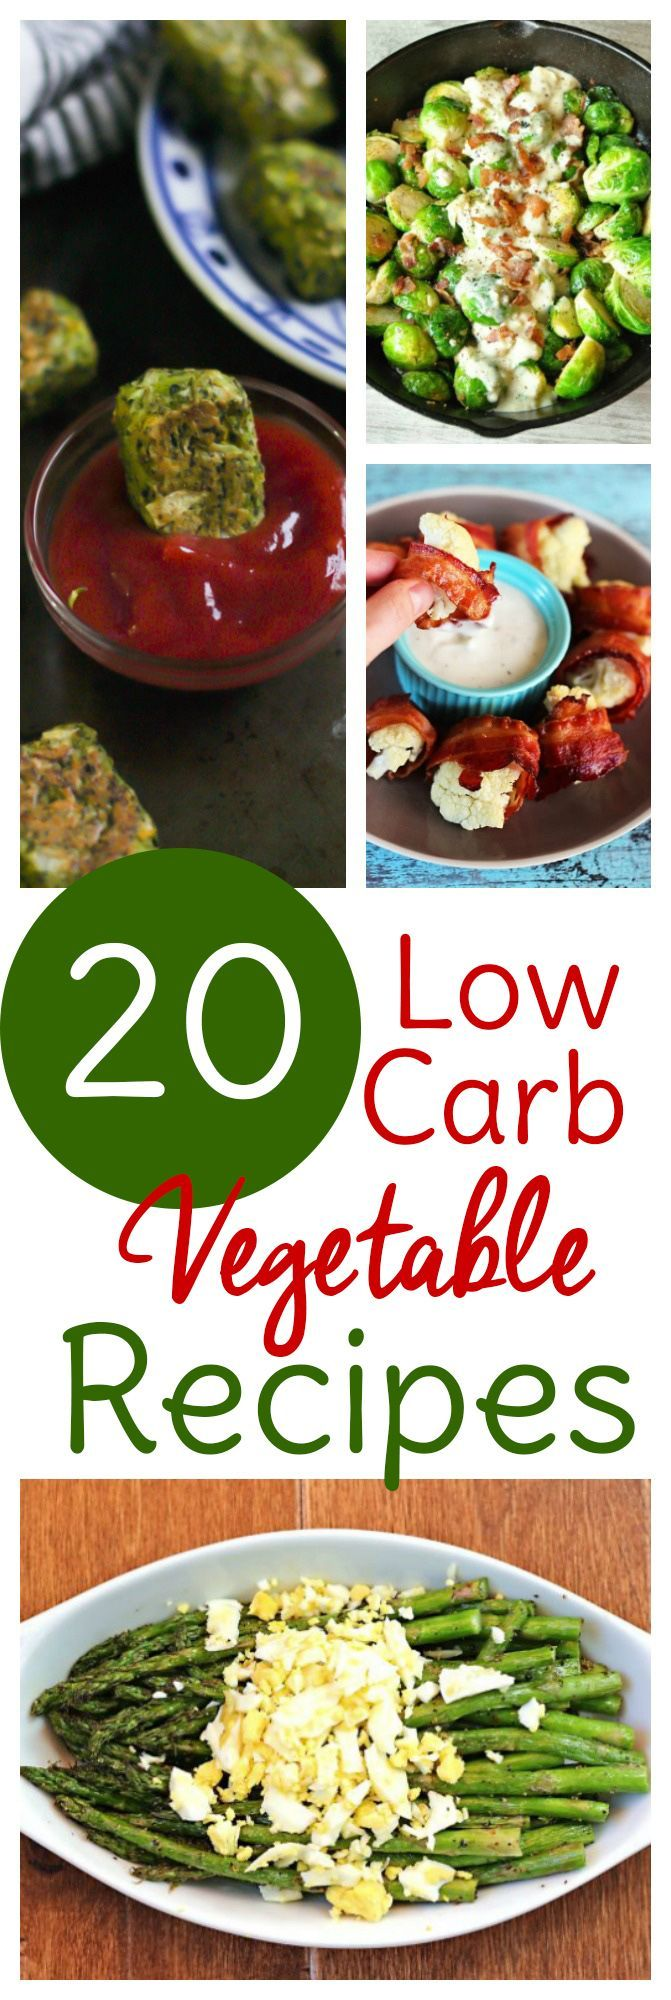 Low carb veggie recipes to help with your ketogenic or low carb diet. Number 2 is my FAVORITE of these healthy low carb vegetable recipes. Try it and tell me what you think!